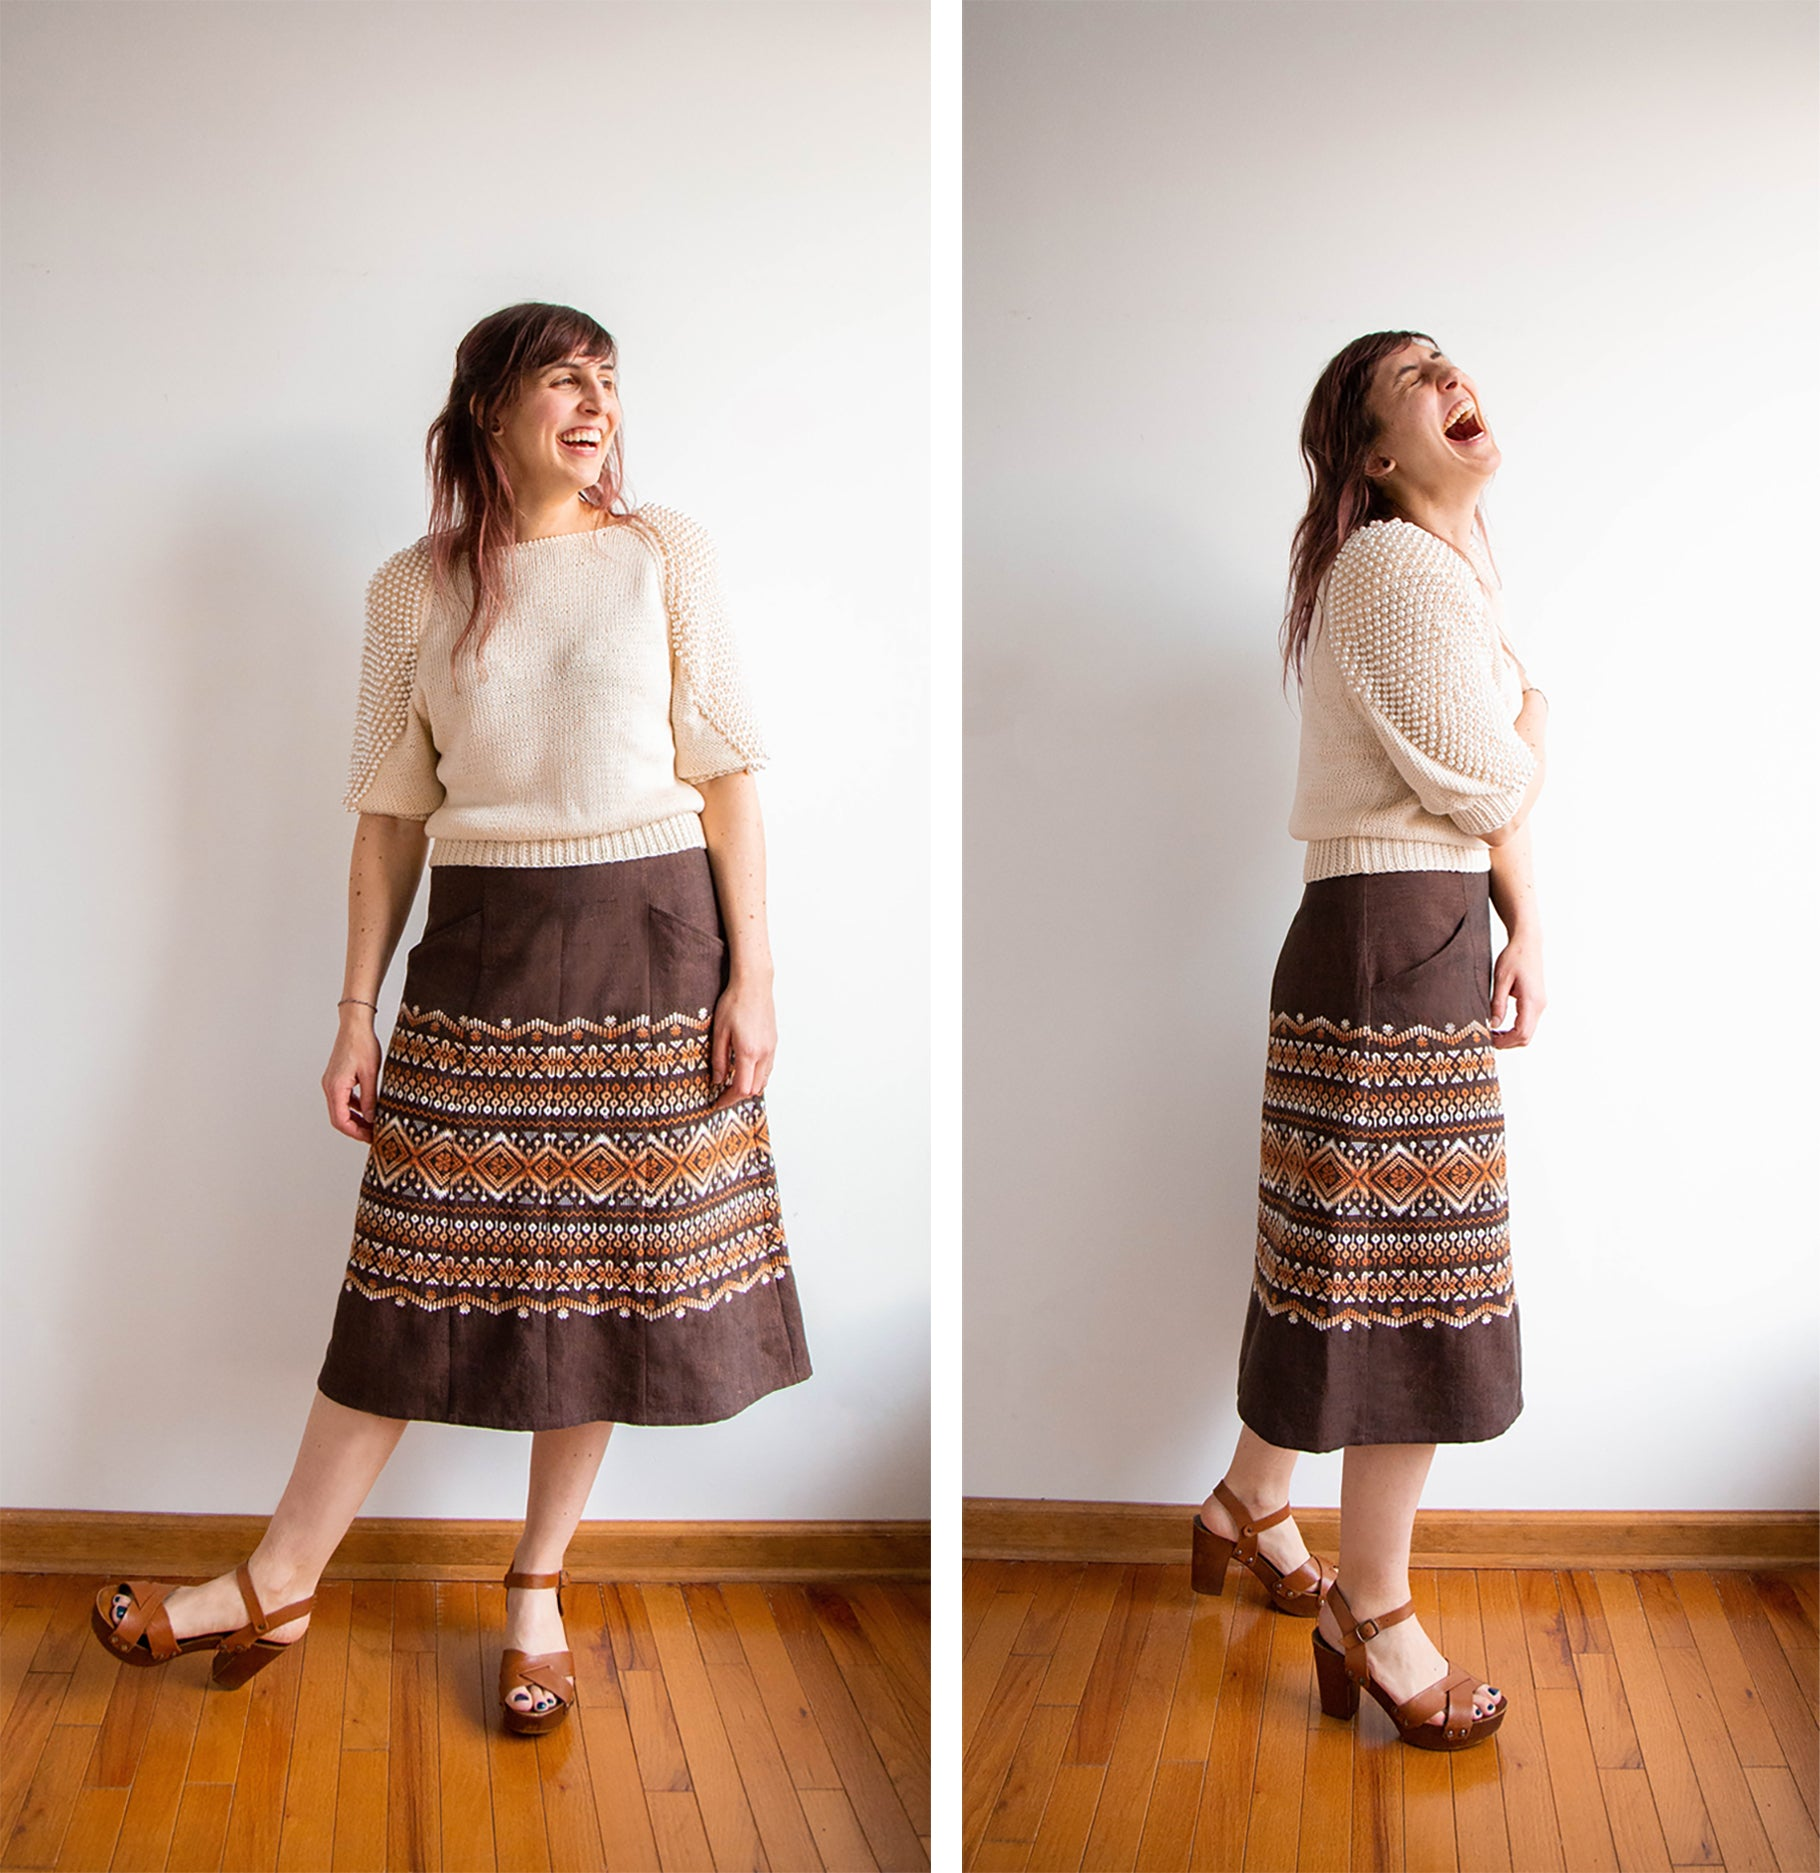 Lexi Reed Skirt | Grainline studio